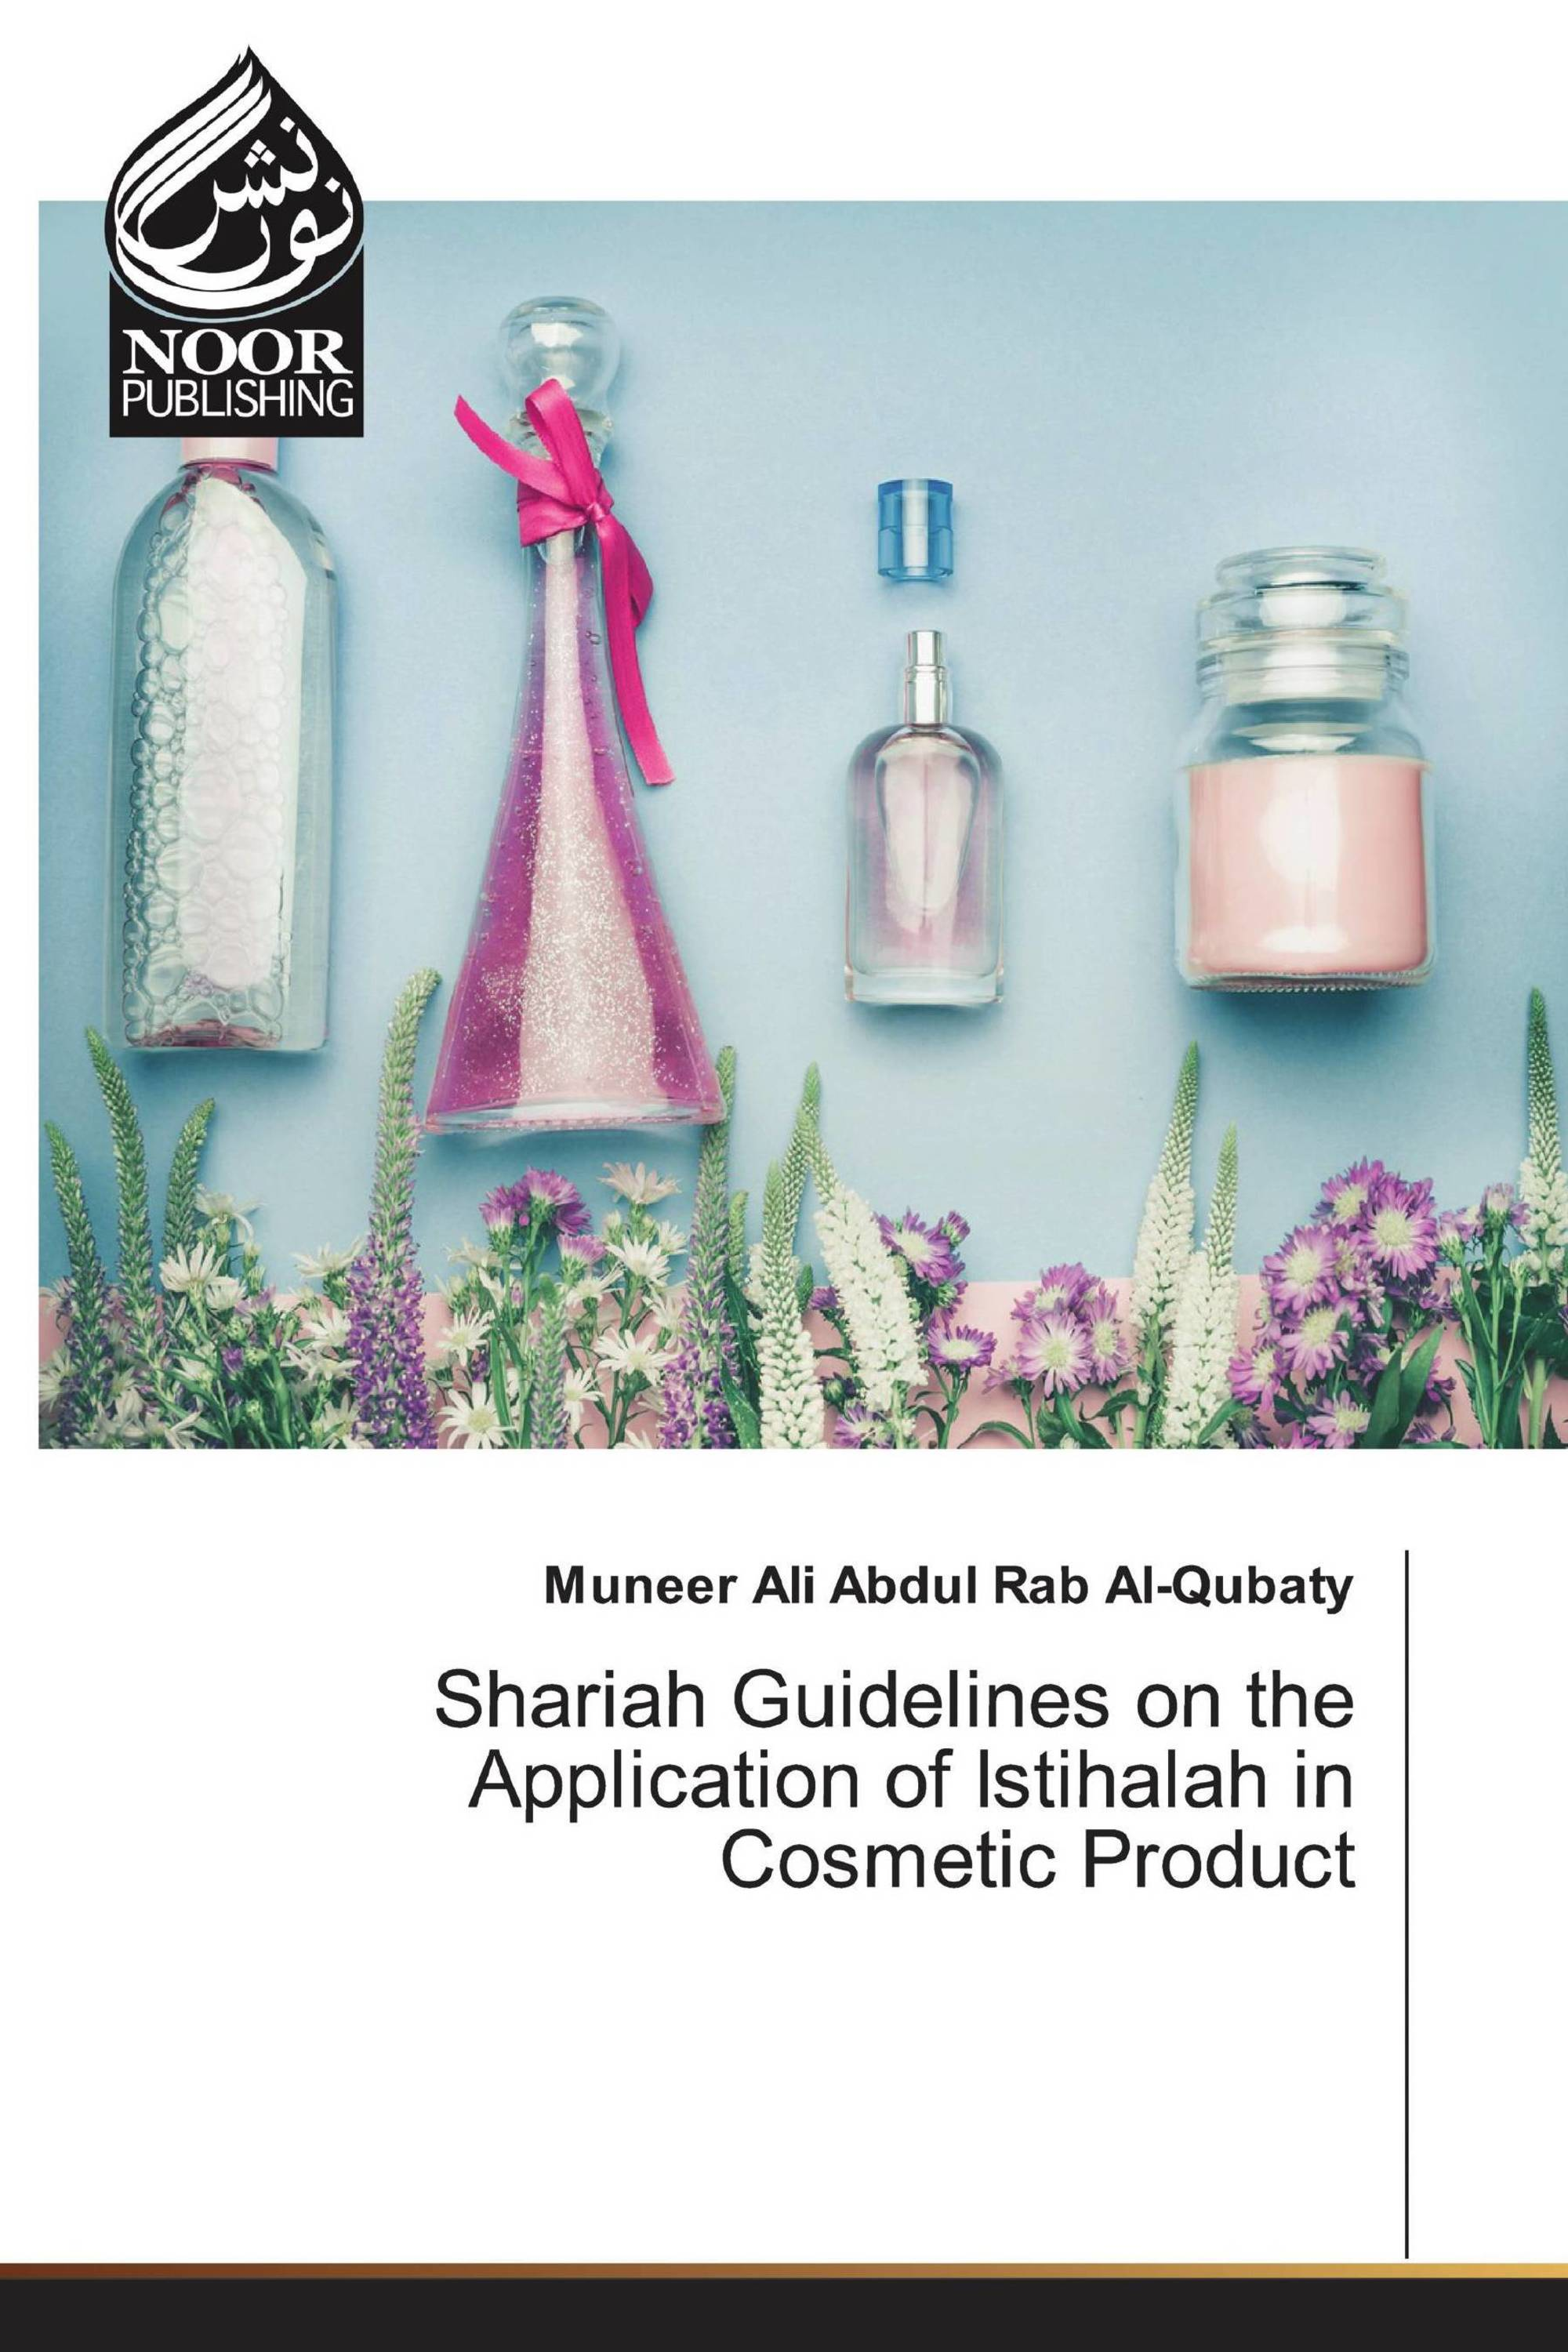 Shariah Guidelines on the Application of Istihalah in Cosmetic Product